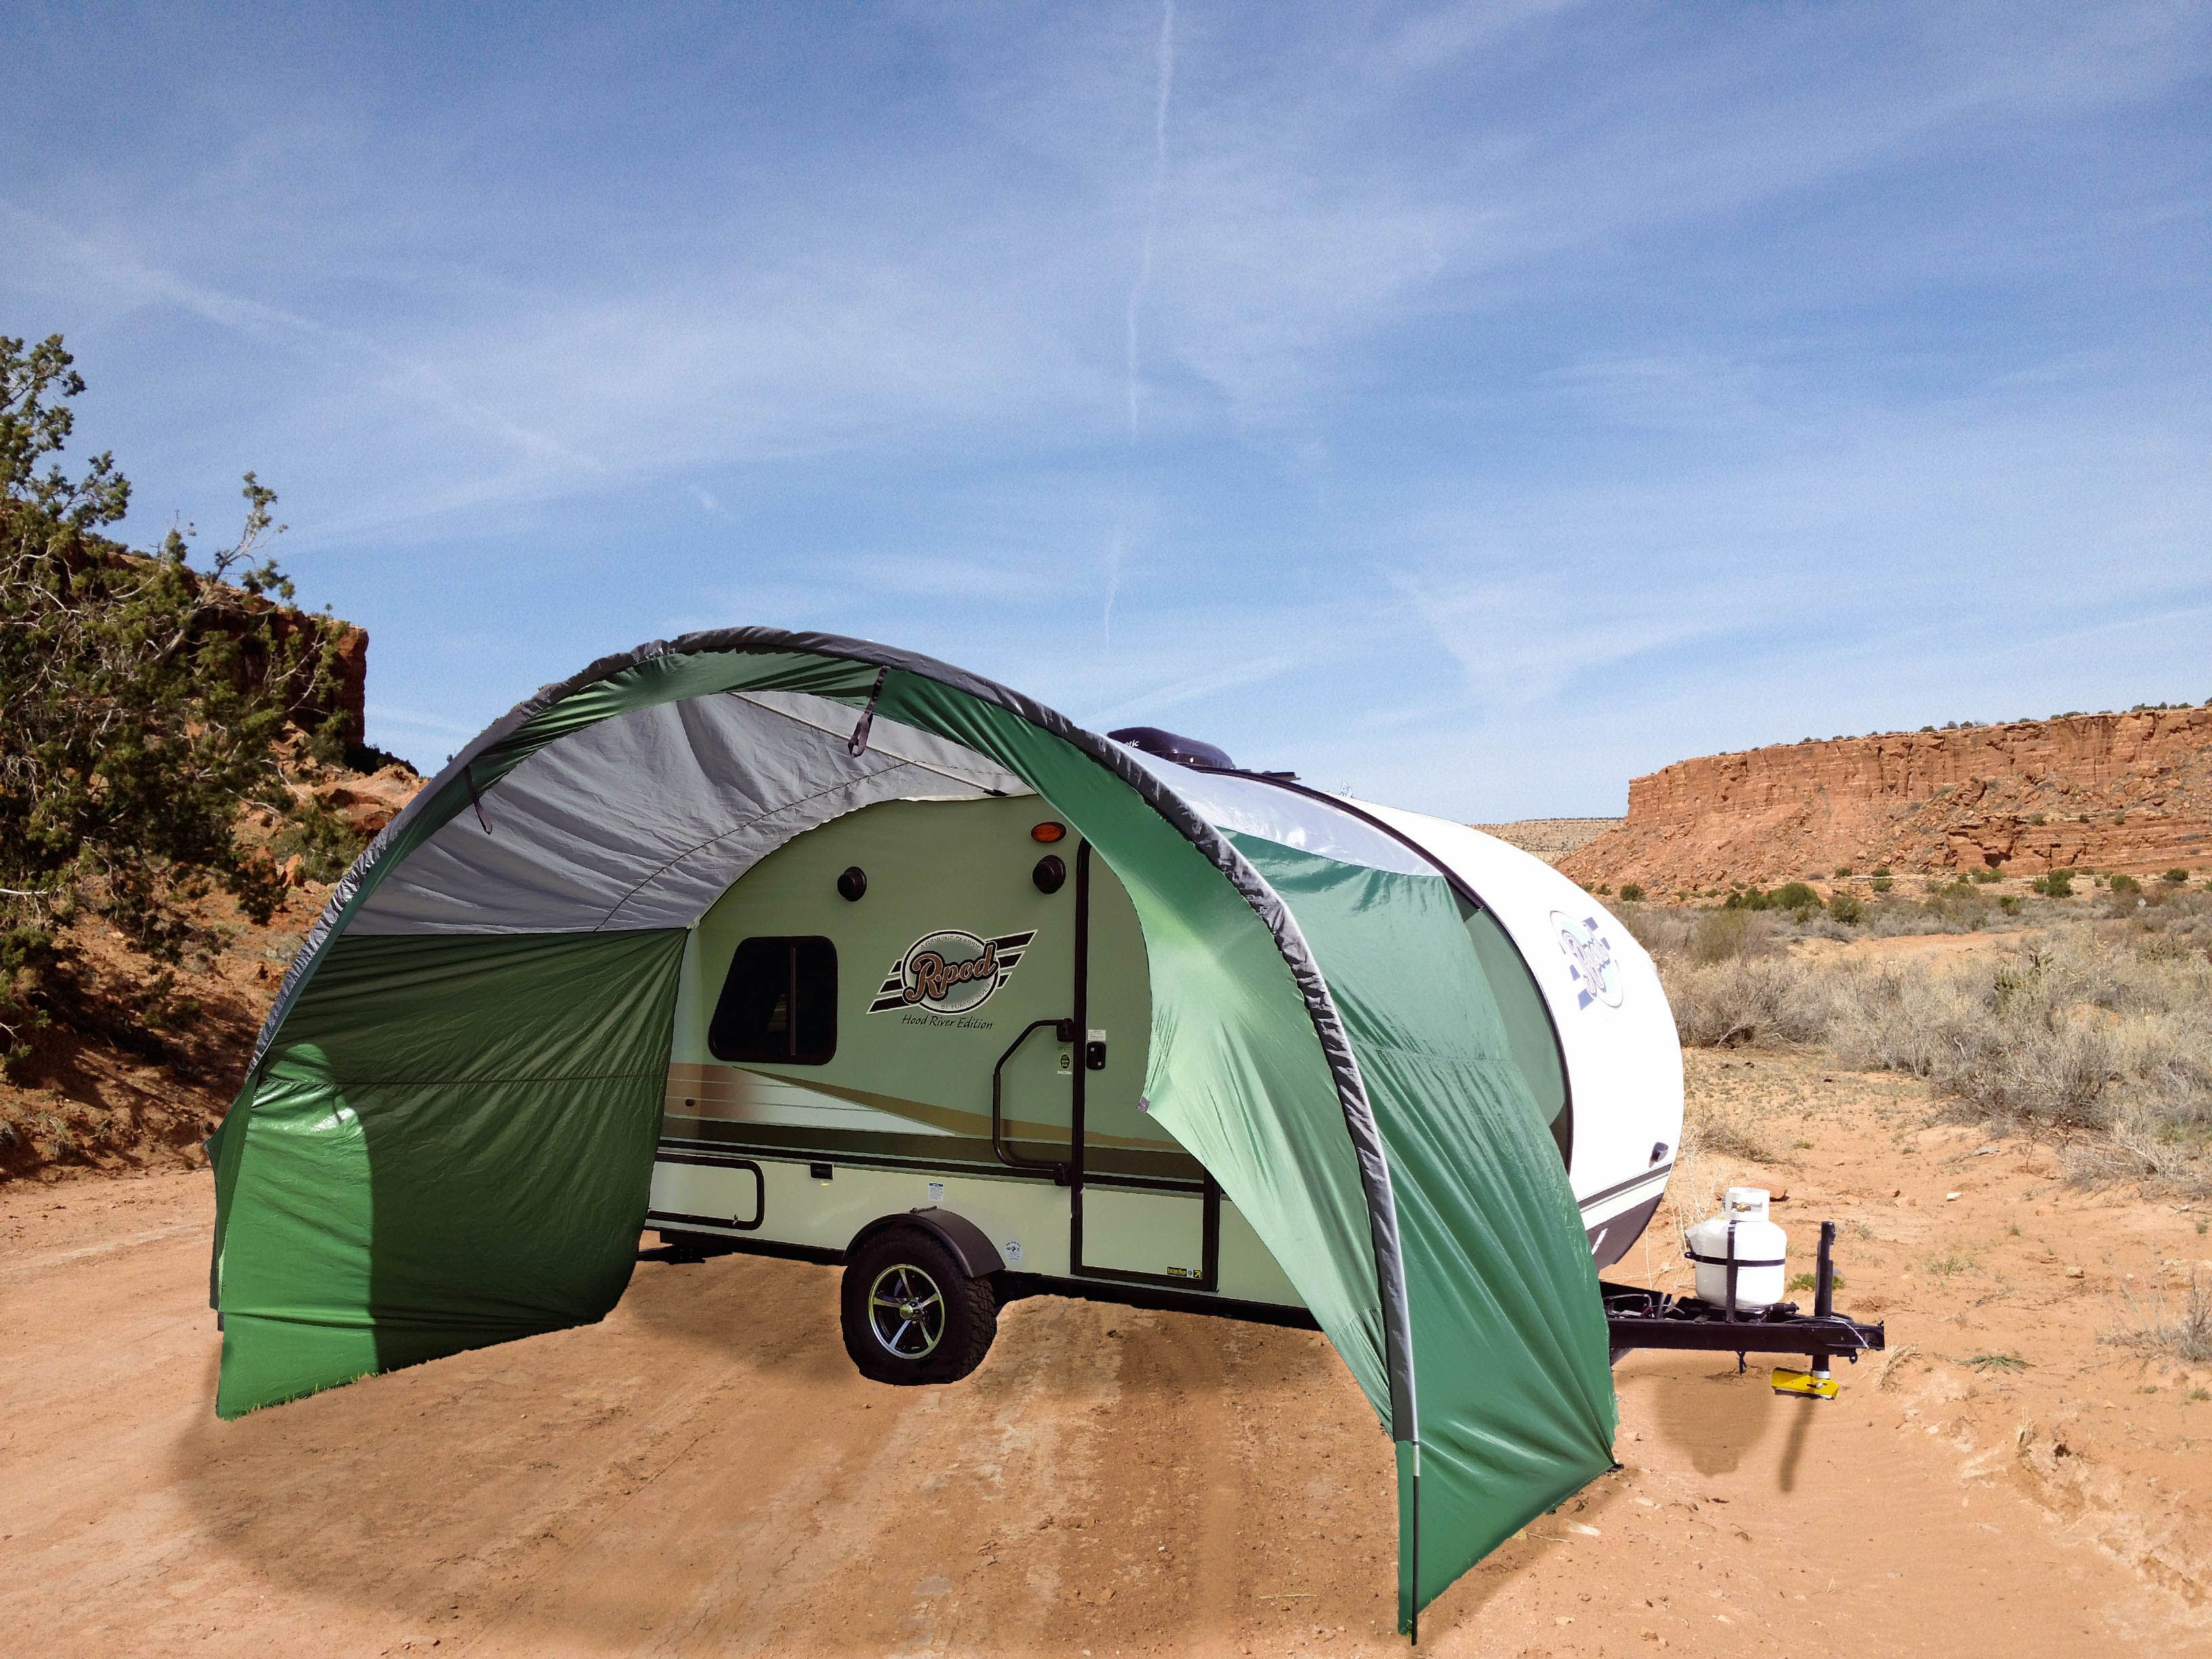 R Pod Trailer Awning By Pahaque R Pod Pod Camper Trailer Awning